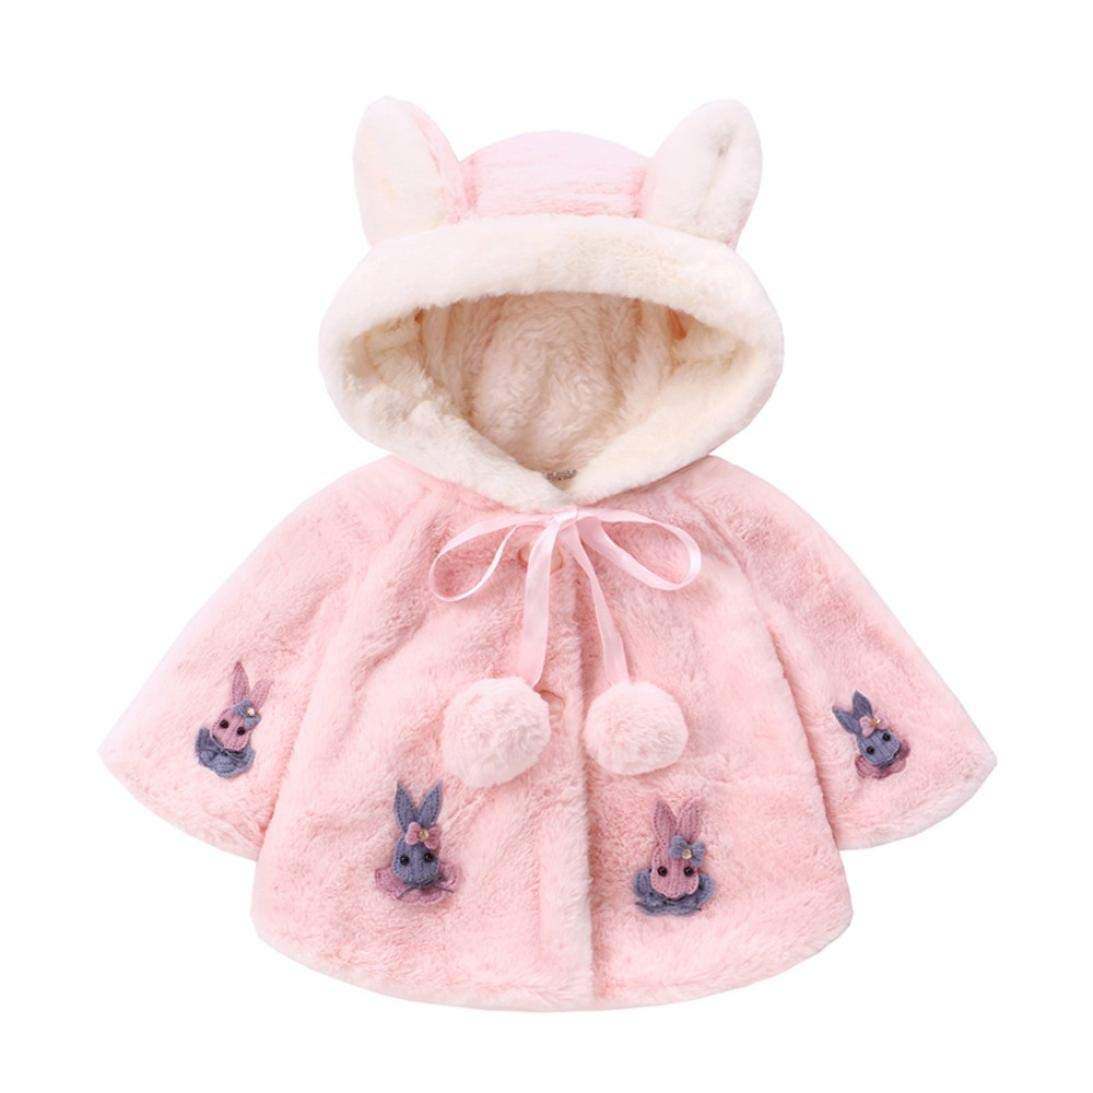 Baby Girl Winter Warm Coat,Jchen(TM) Clearance! Infant Kids Baby Girls Long Sleeve Cute Rabbit Hooded Coat Warm Outerwear for 0-3 Y (Age: 0-12 Months, Pink)